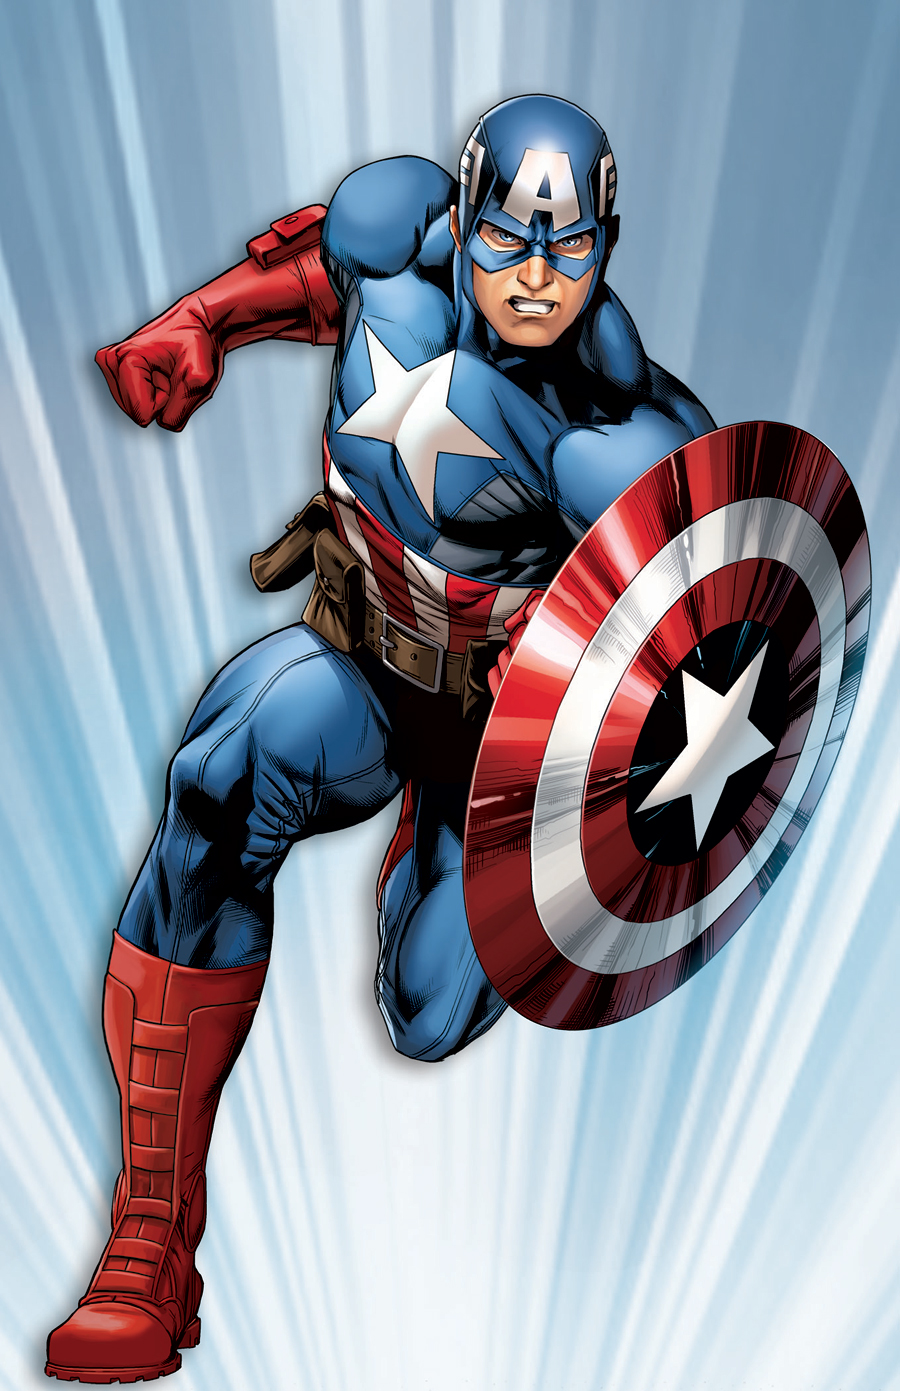 Captain America Super Hero 108.57 Kb